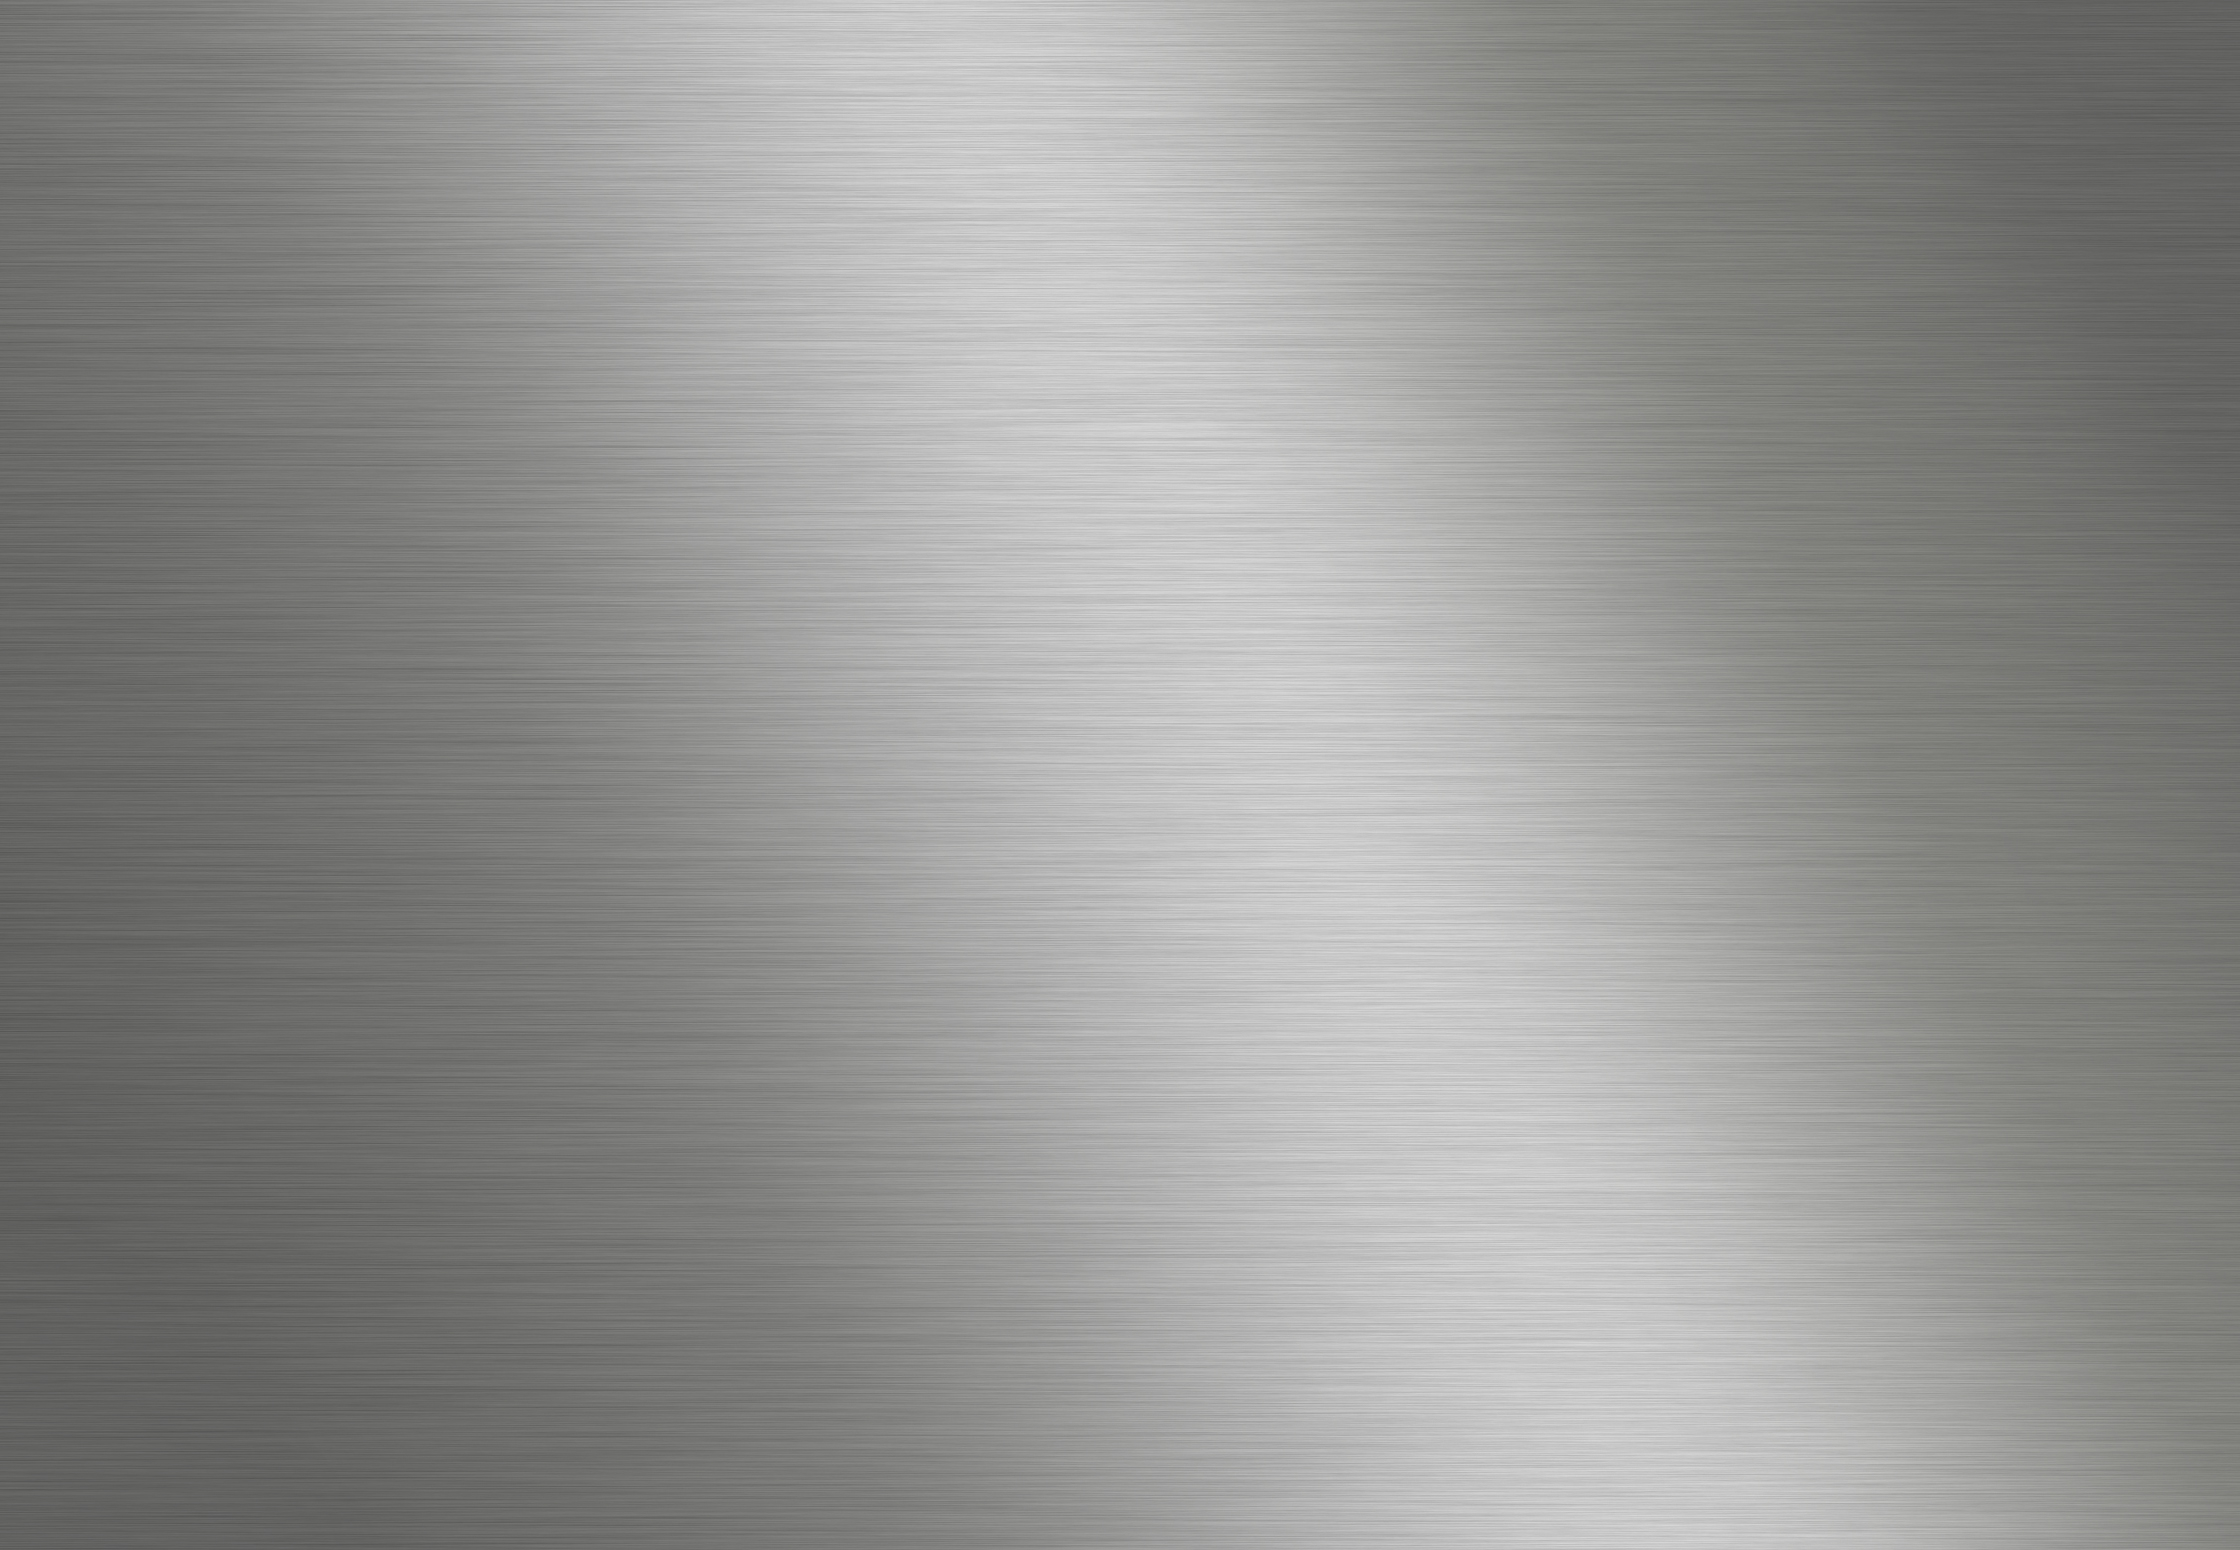 Metal background, White, Reflection, Wallpaper, Texture, HQ Photo